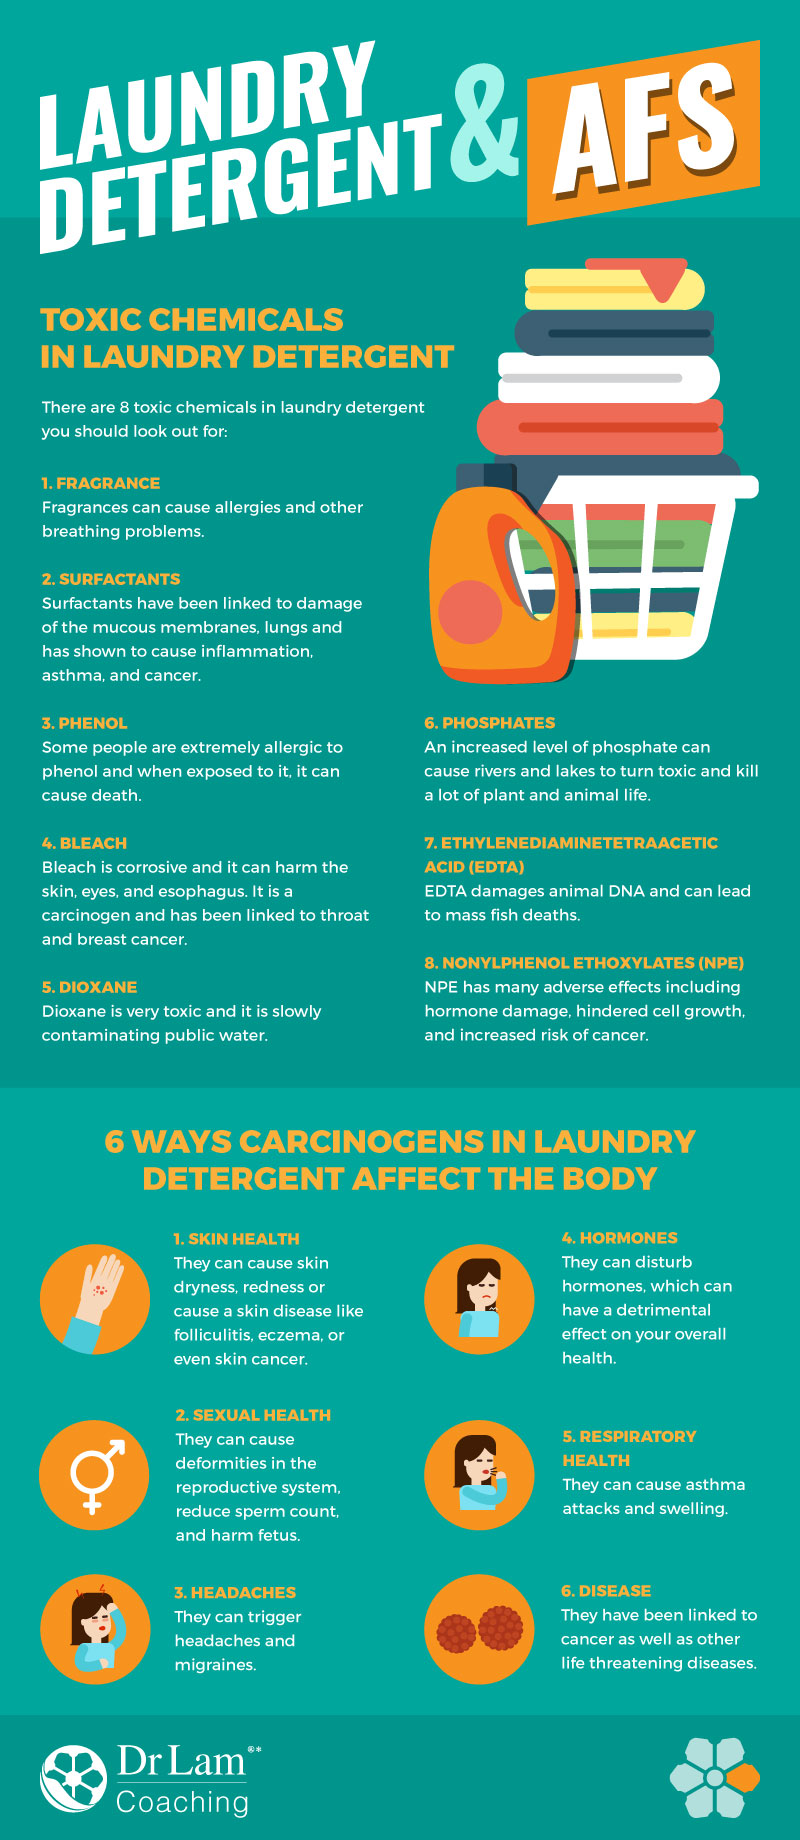 Check out this easy to understand infographic about carcinogens in laundry detergent and their effects to AFS